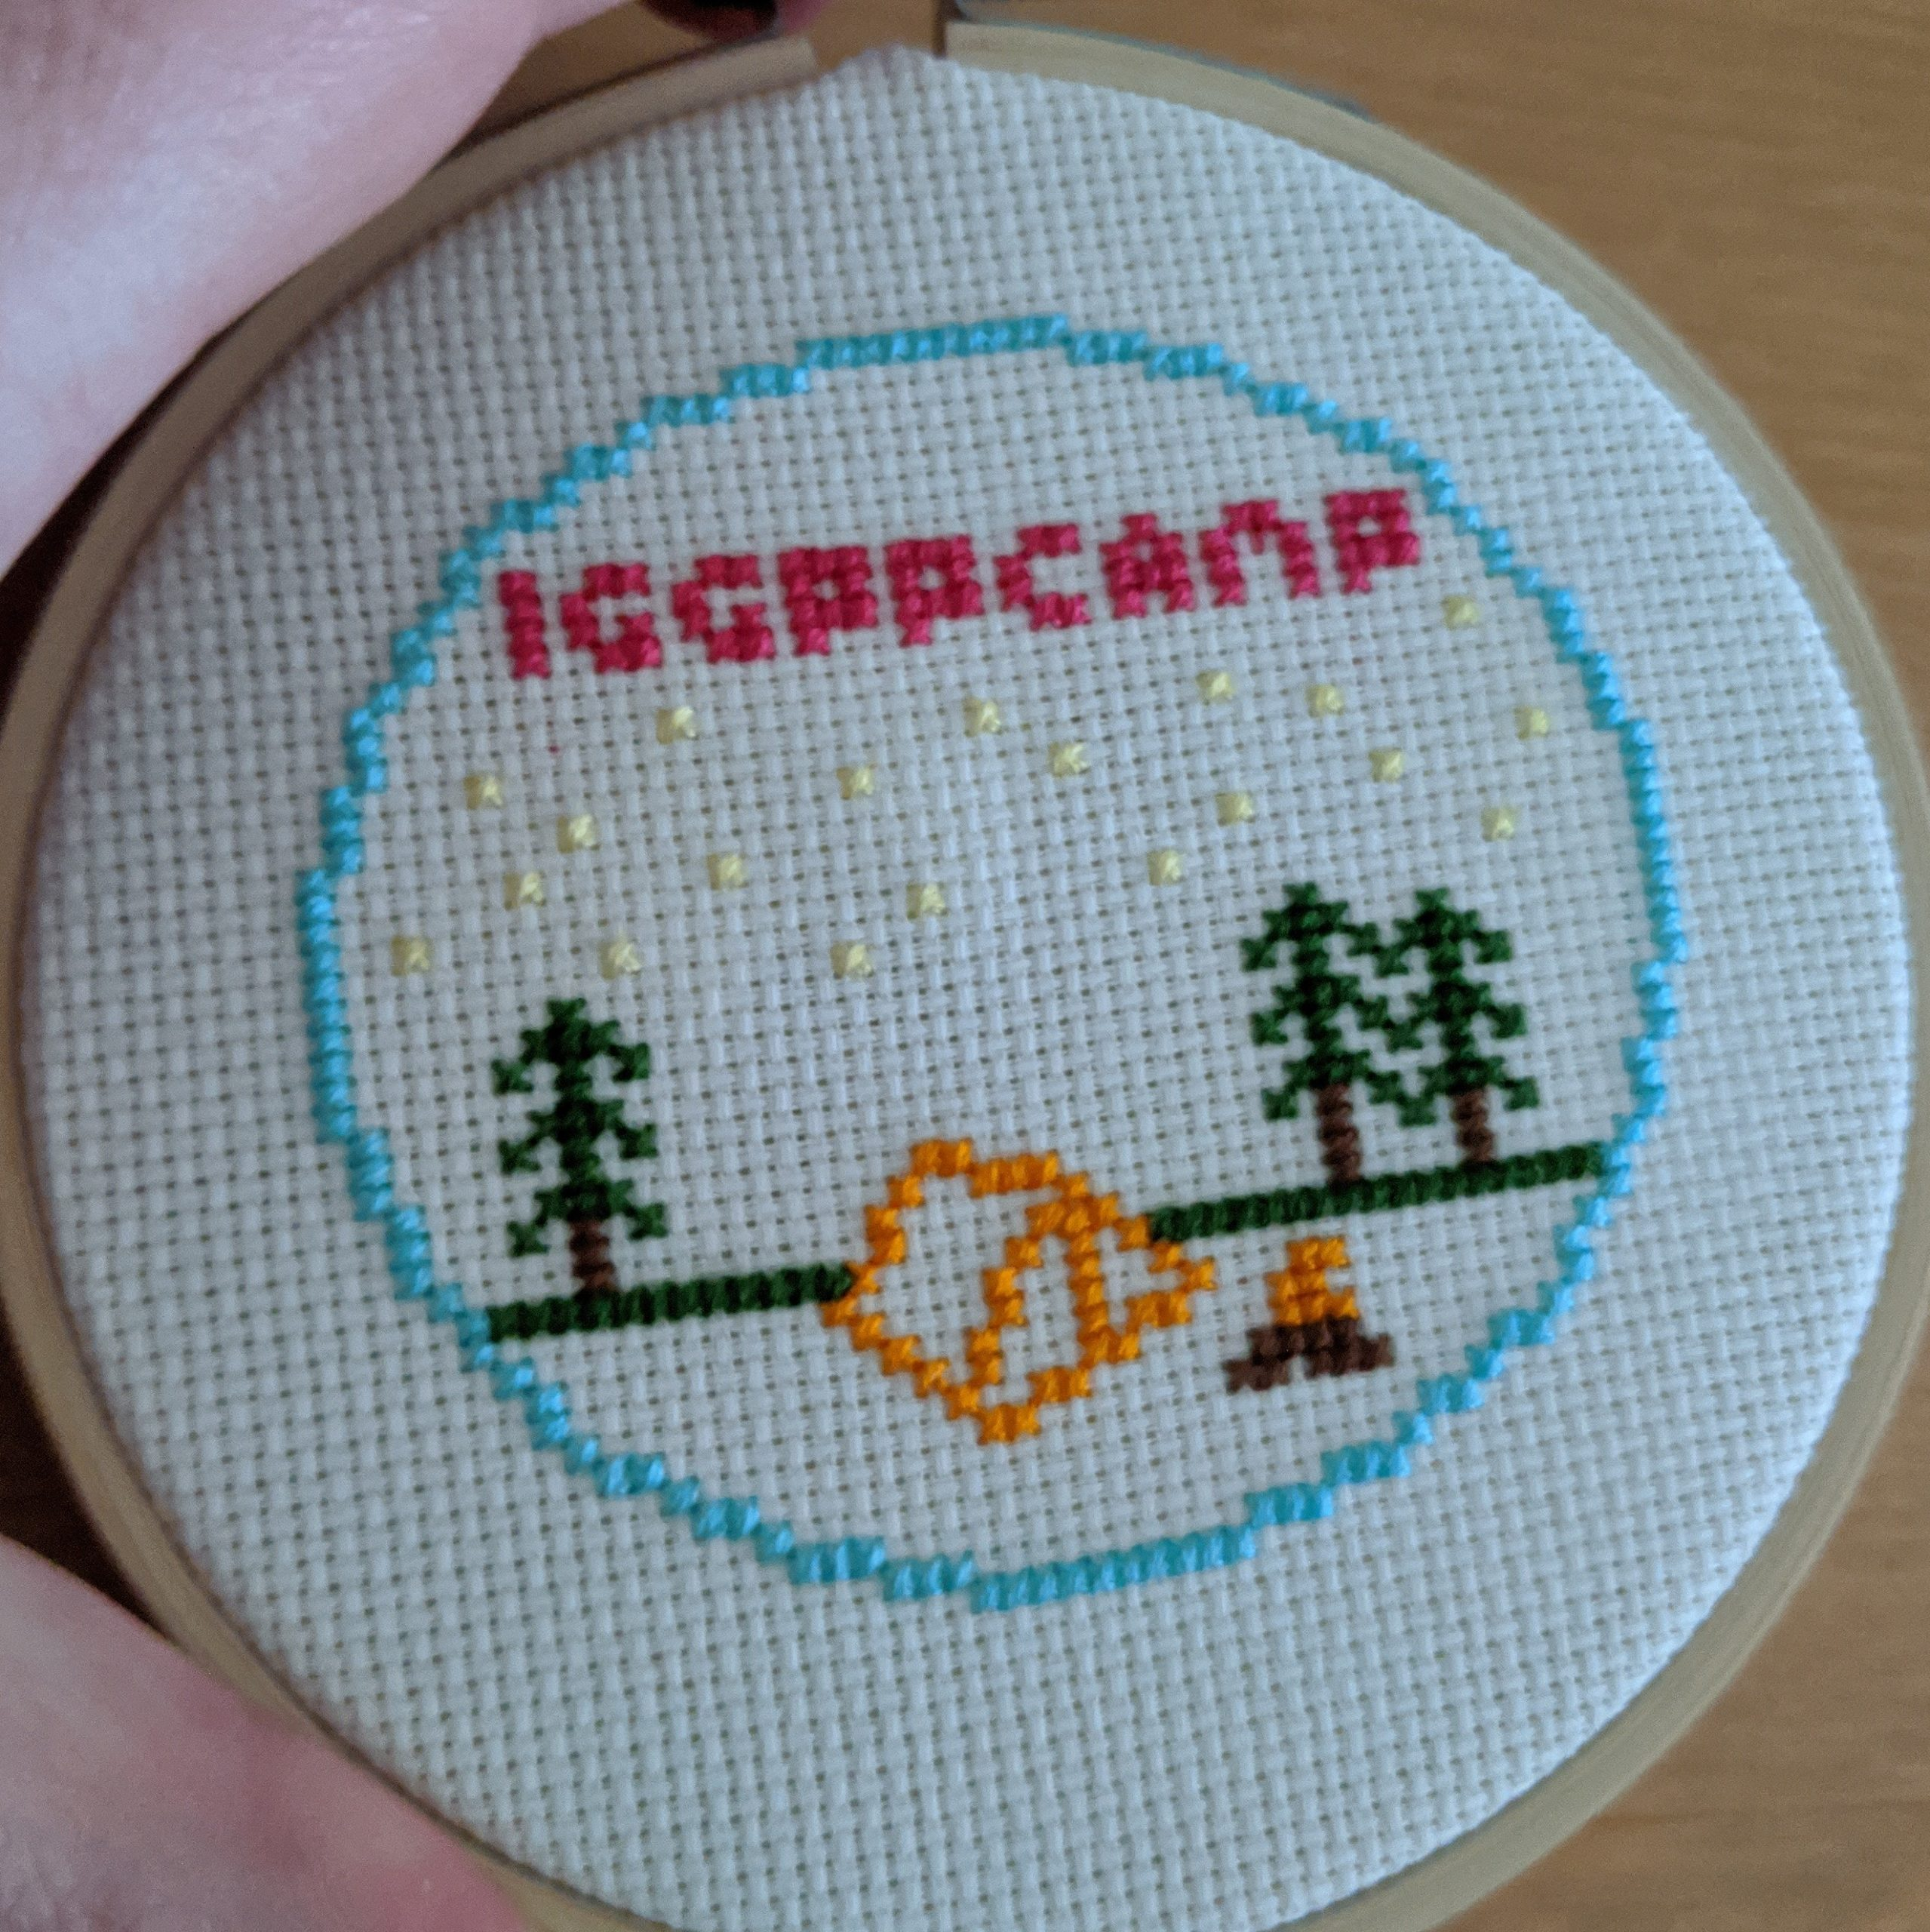 completed cross-stitch